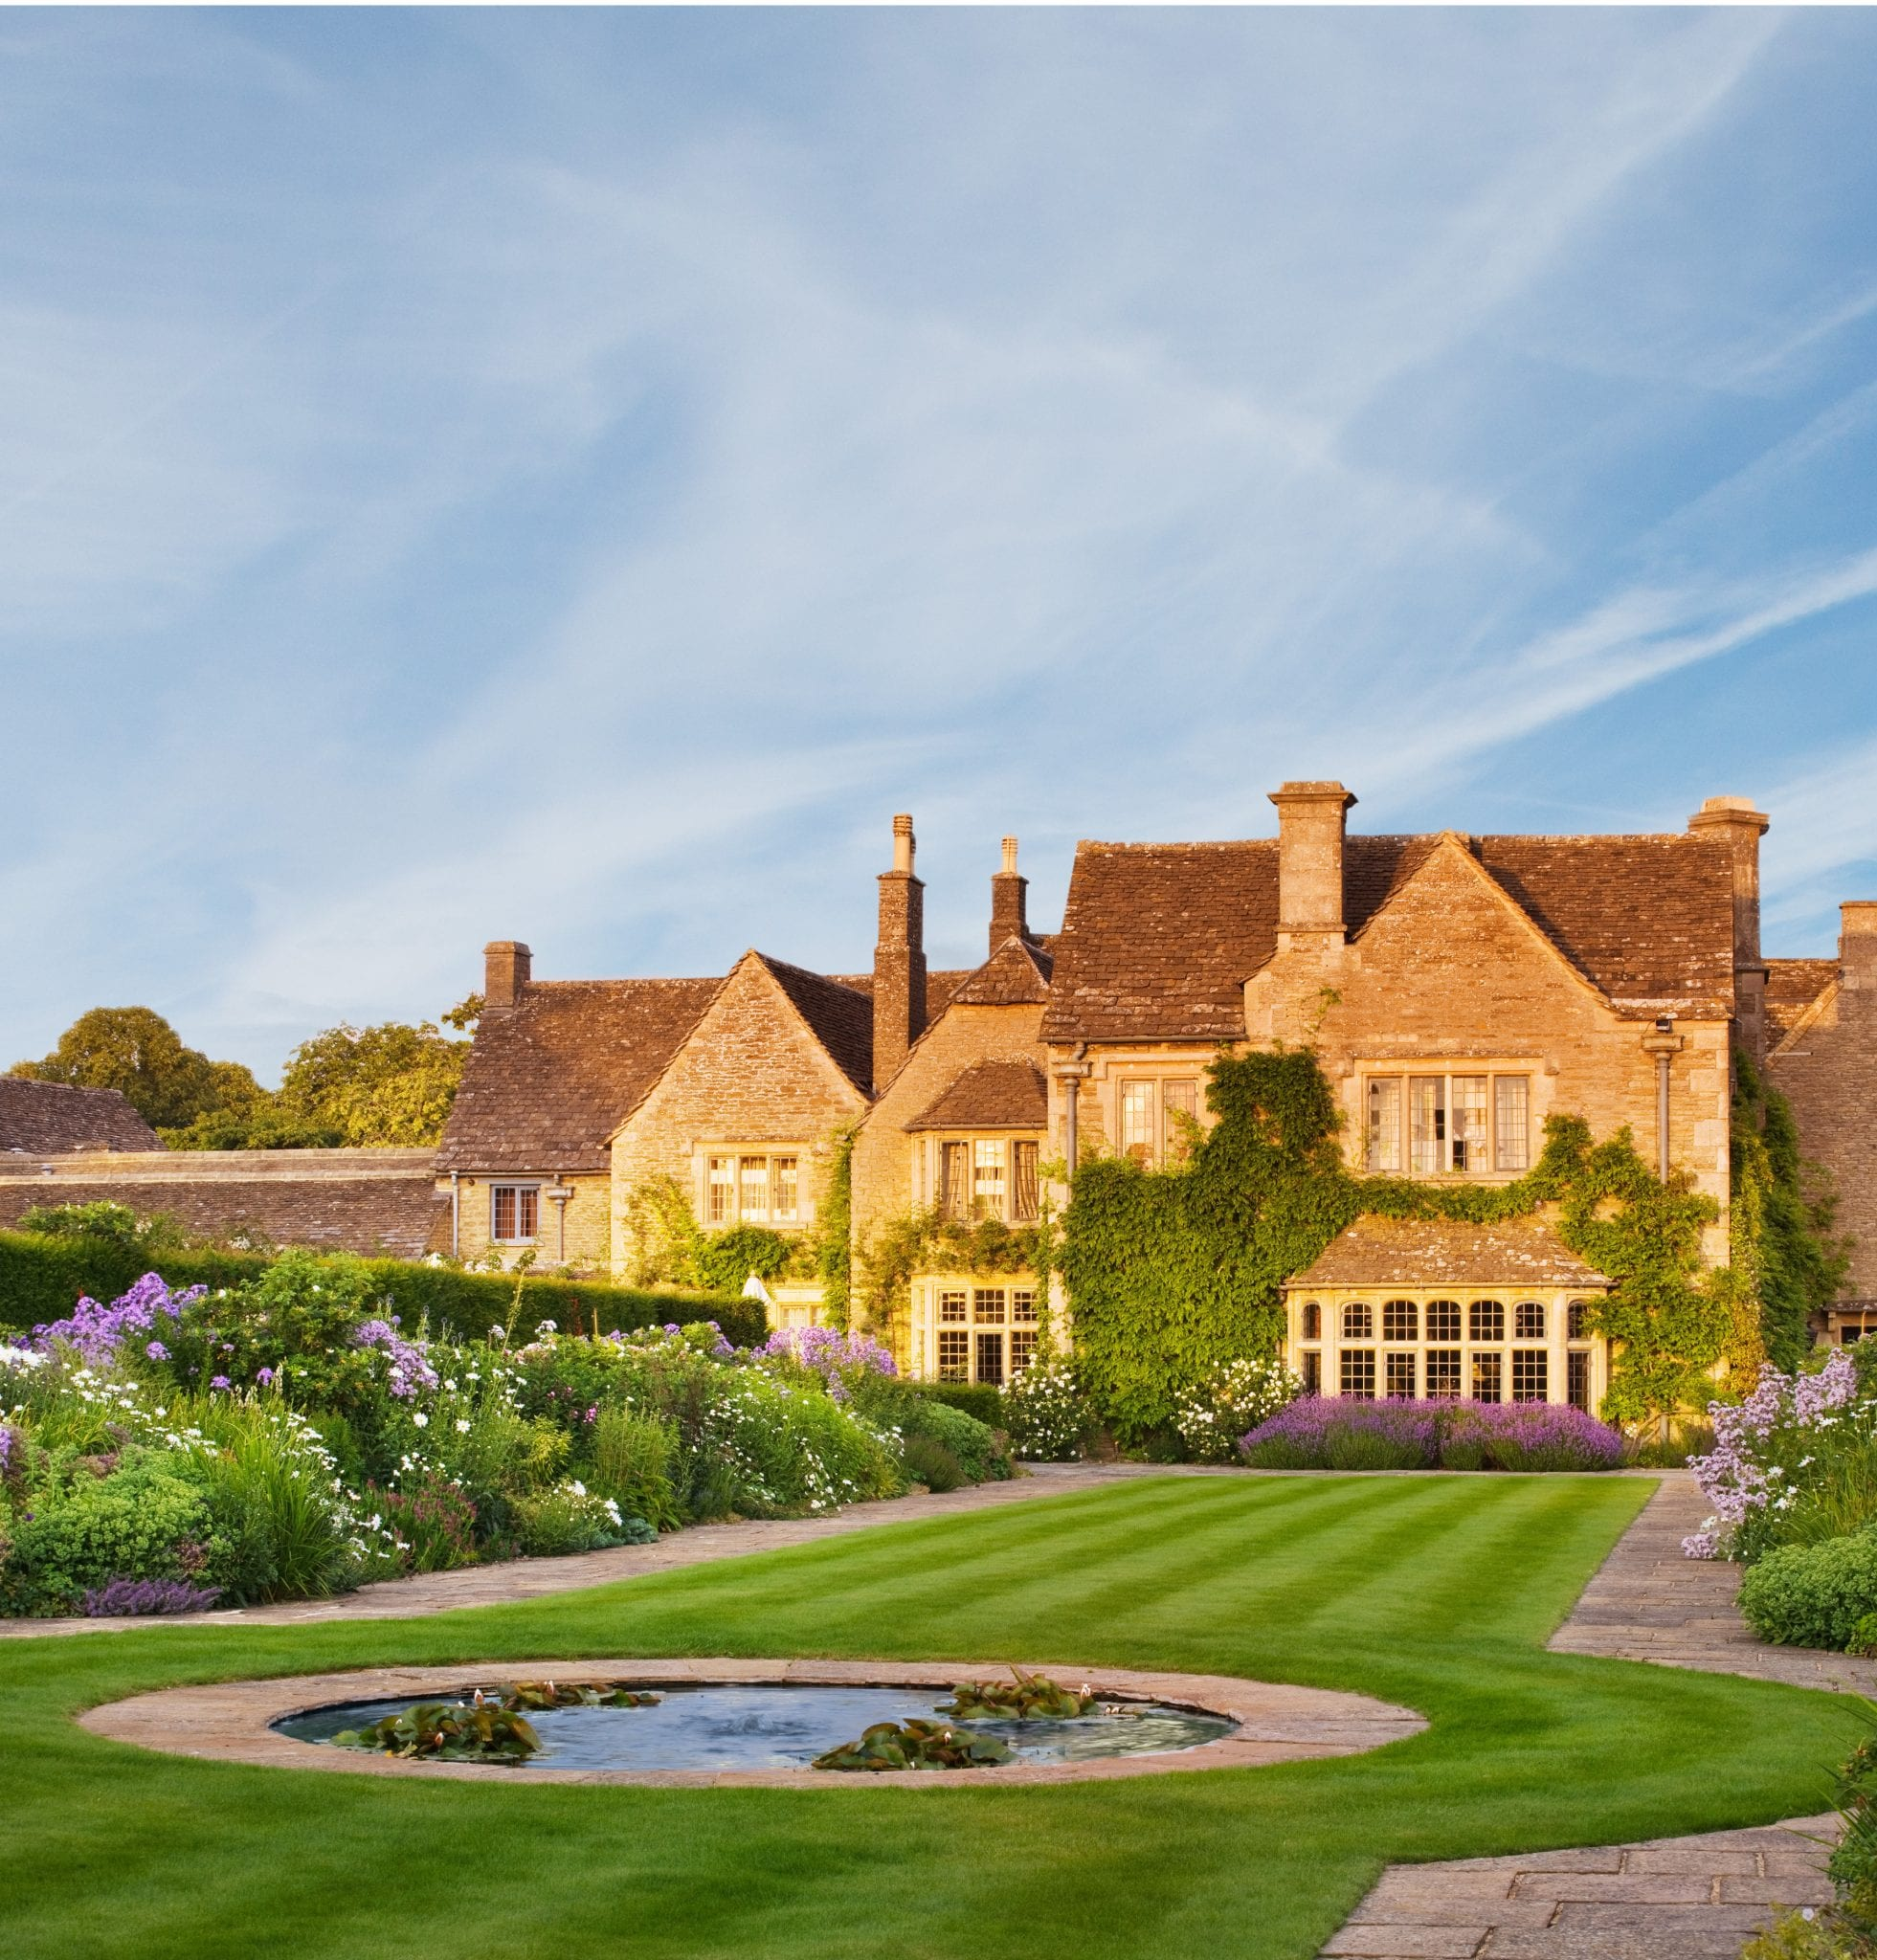 A weekend at Whatley Manor